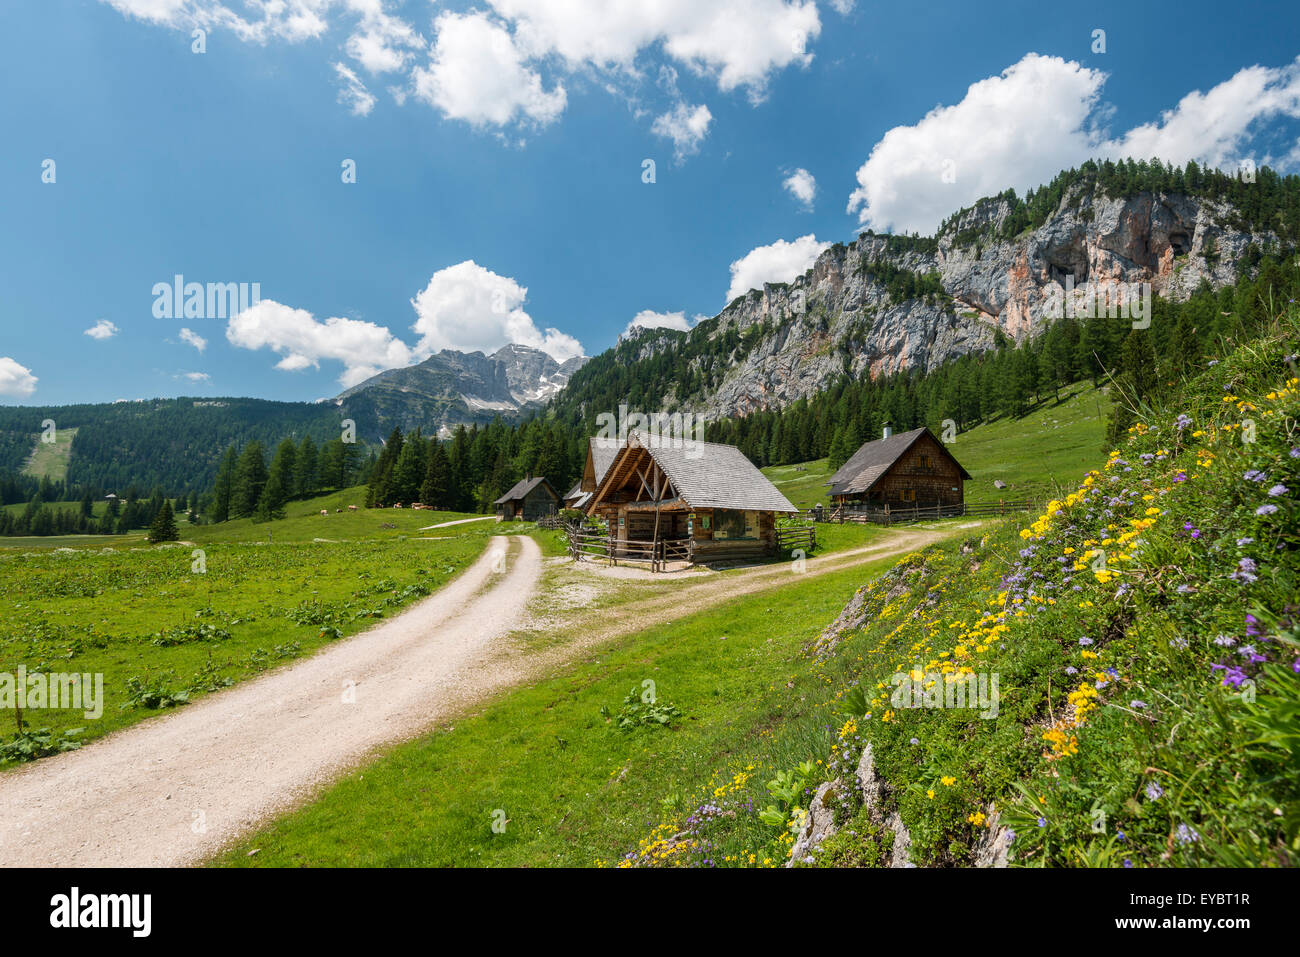 Alpine cabins at Wurzeralm, Austria Stock Photo